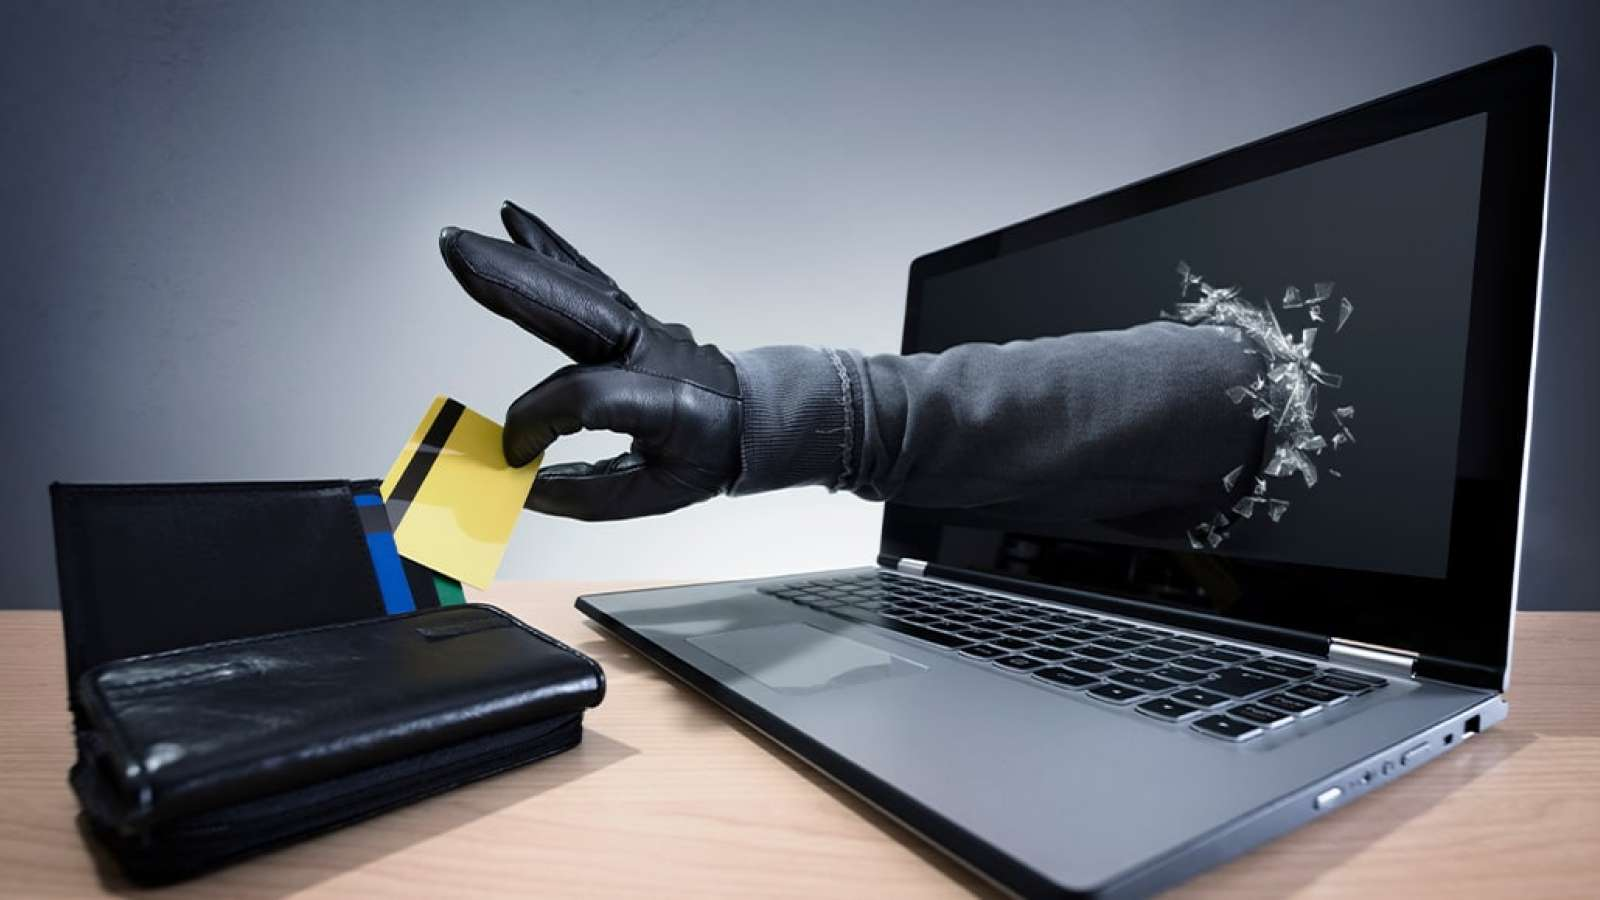 burglar arm reaches out from laptop screen to steal credit card